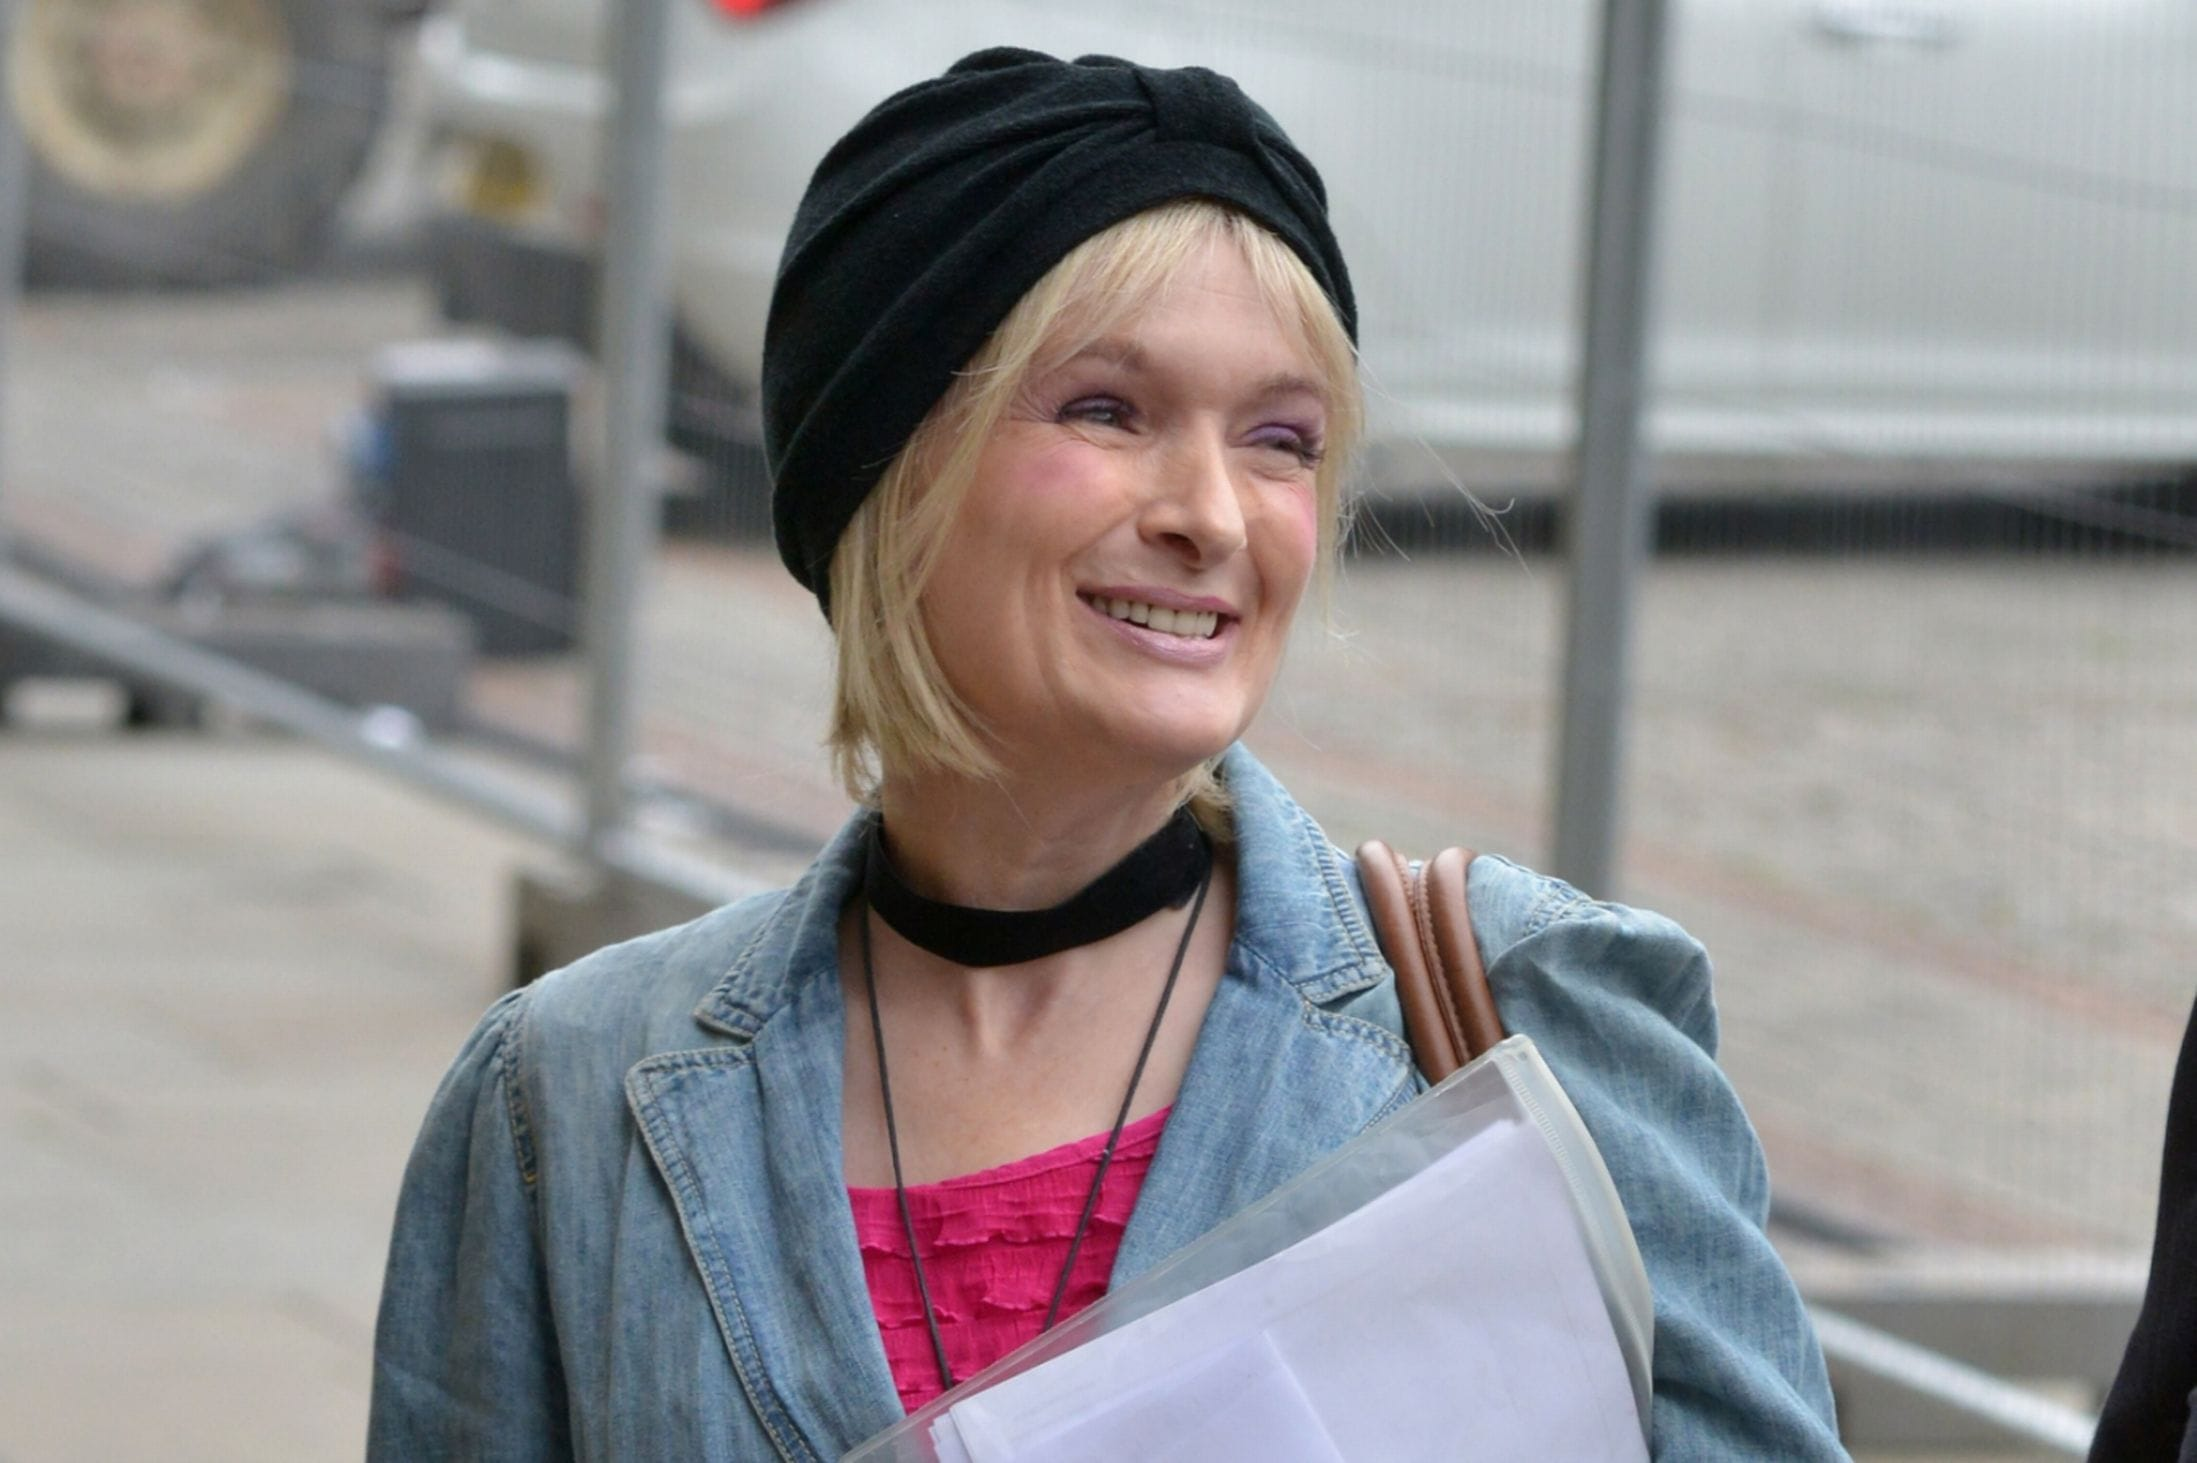 Caroline Aherne Wallpapers hd